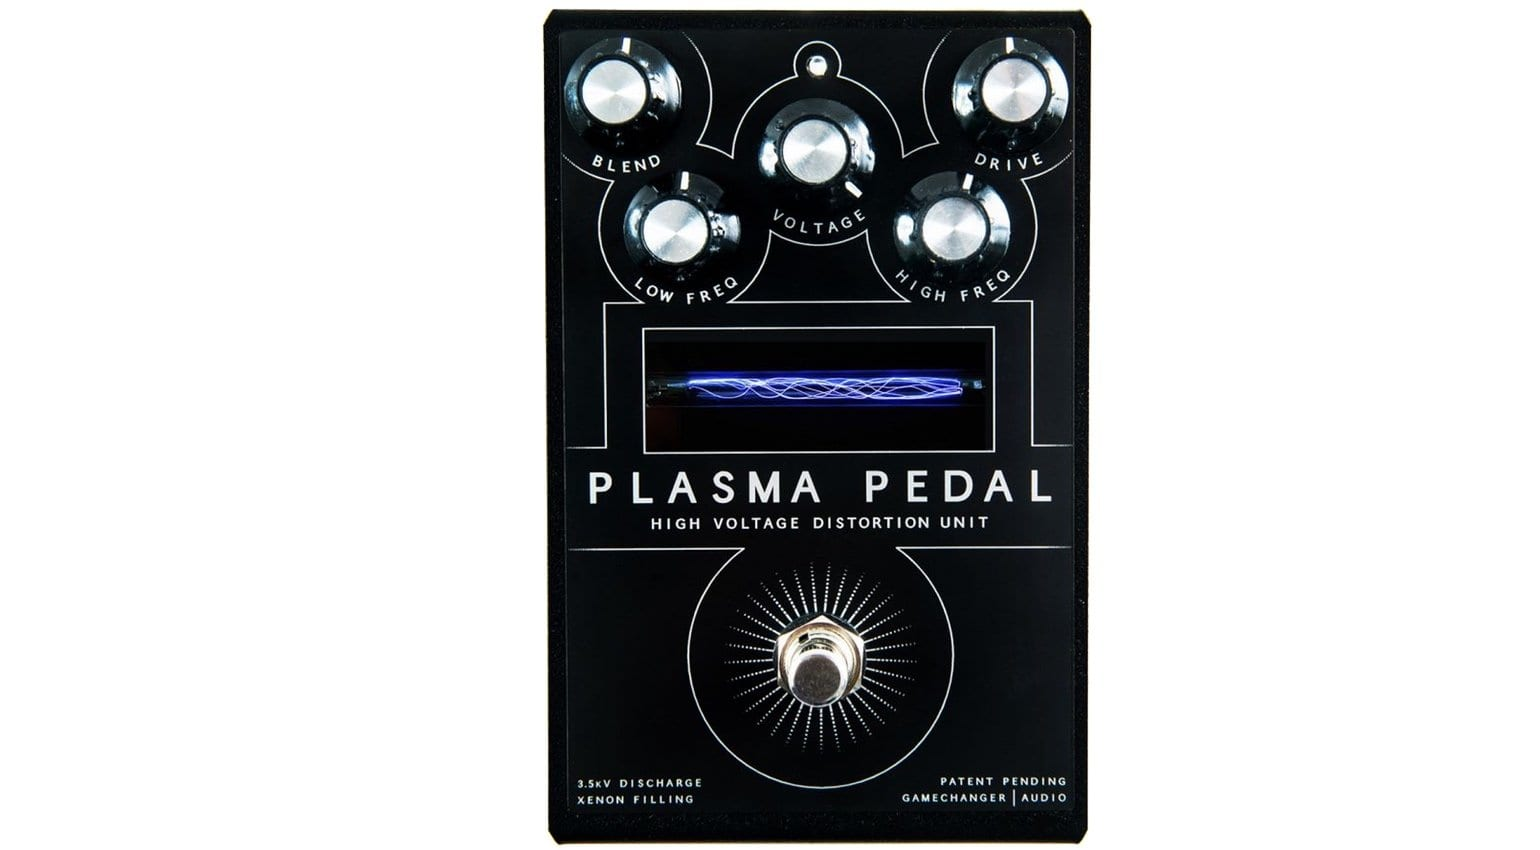 Game Changer Audio Plasma Pedal